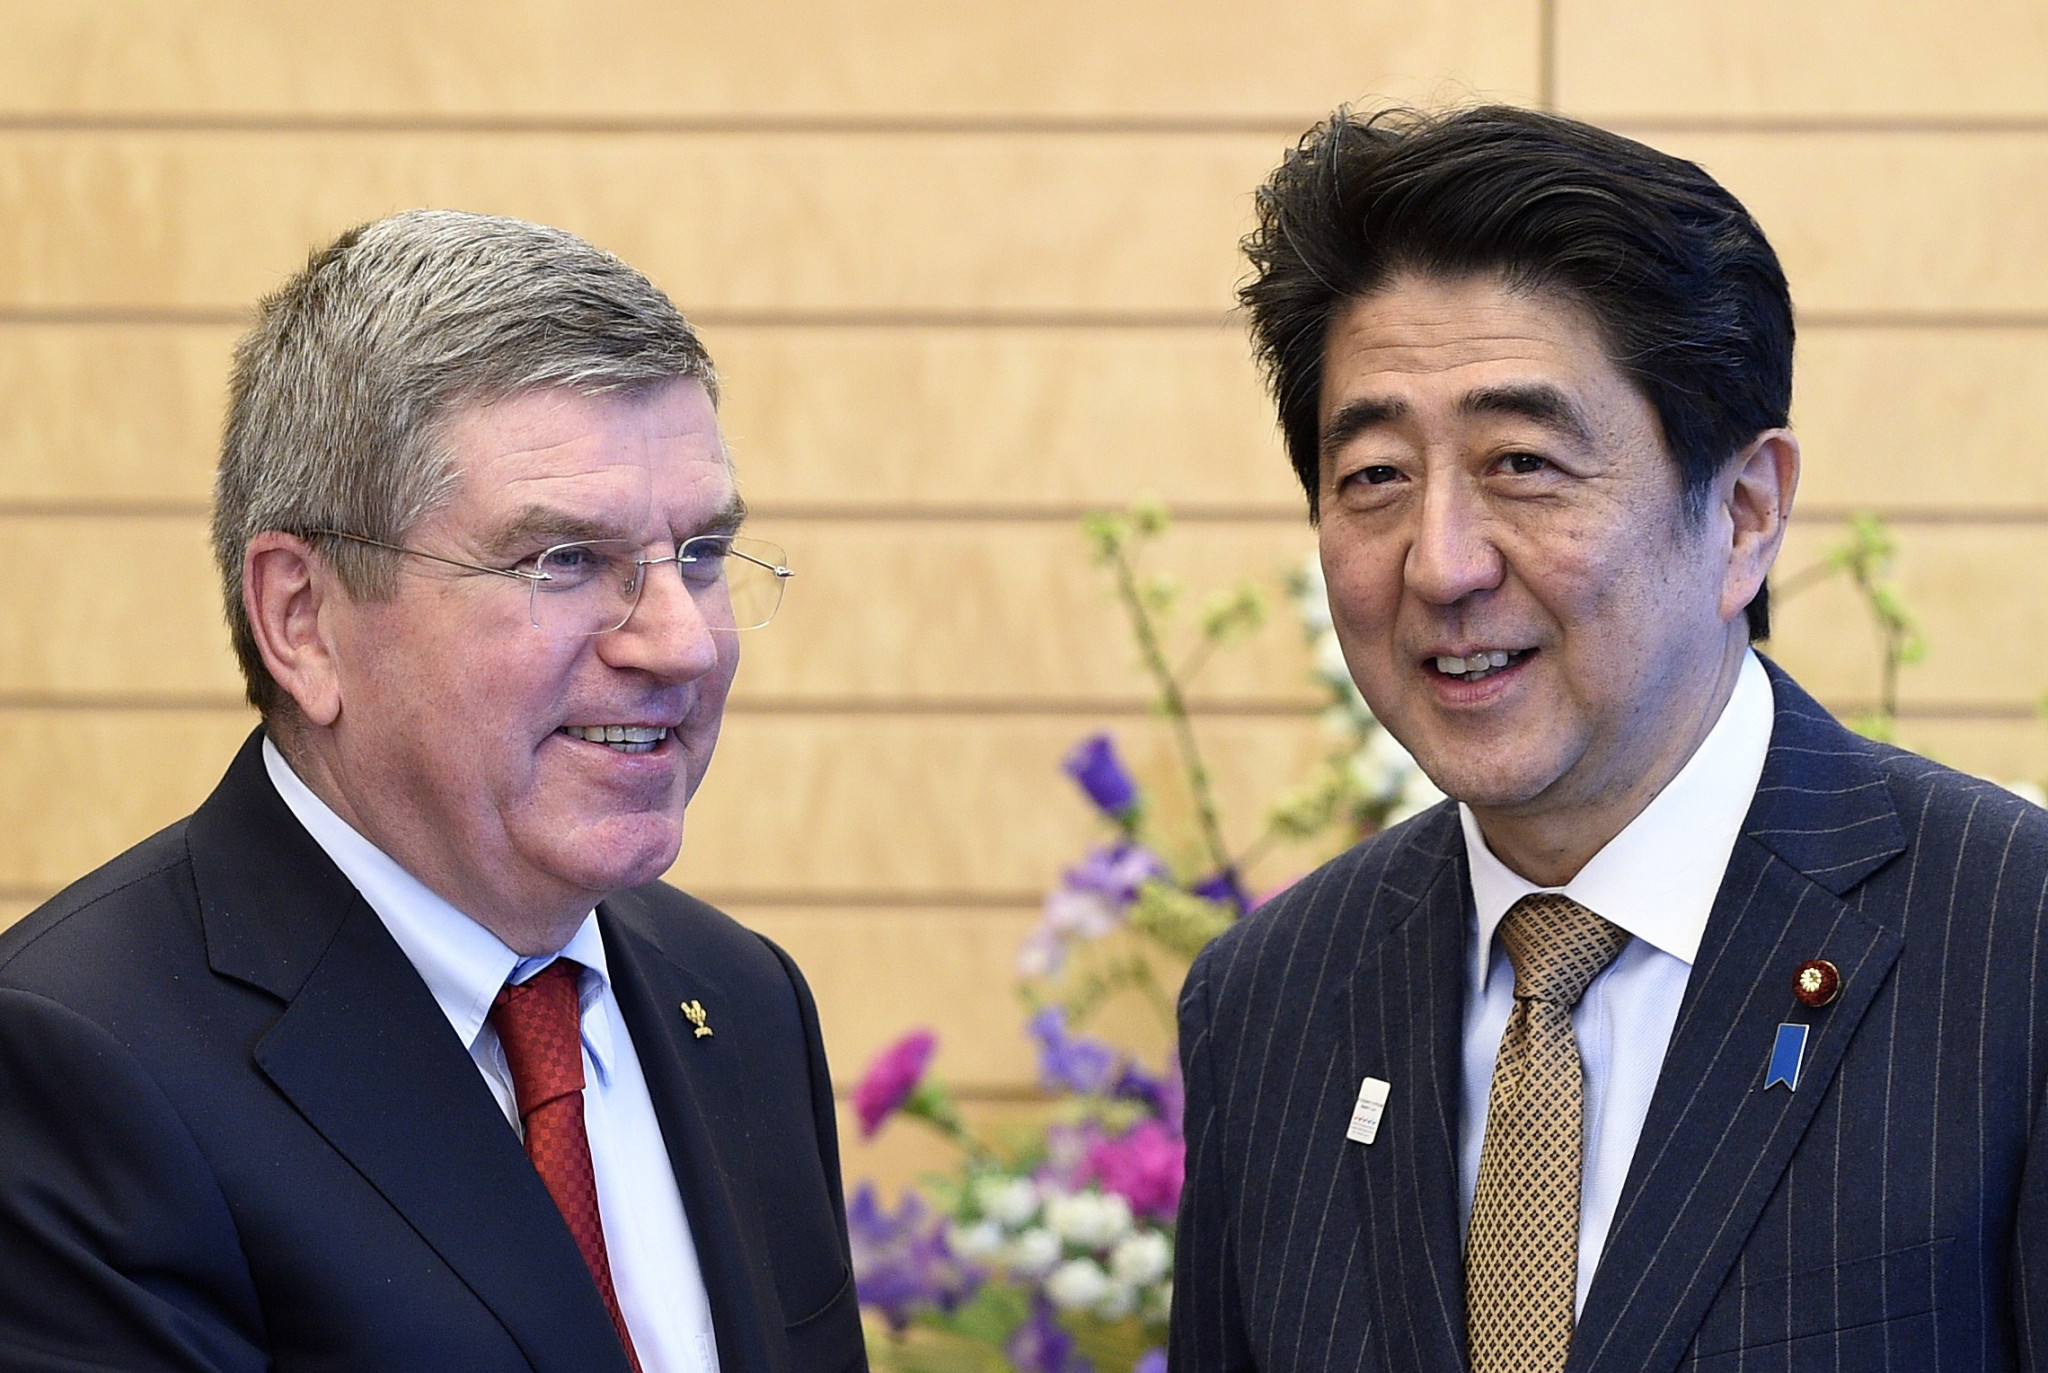 Thomas Bach, left, meeting with Shinzo Abe in 2015 ©Getty Images